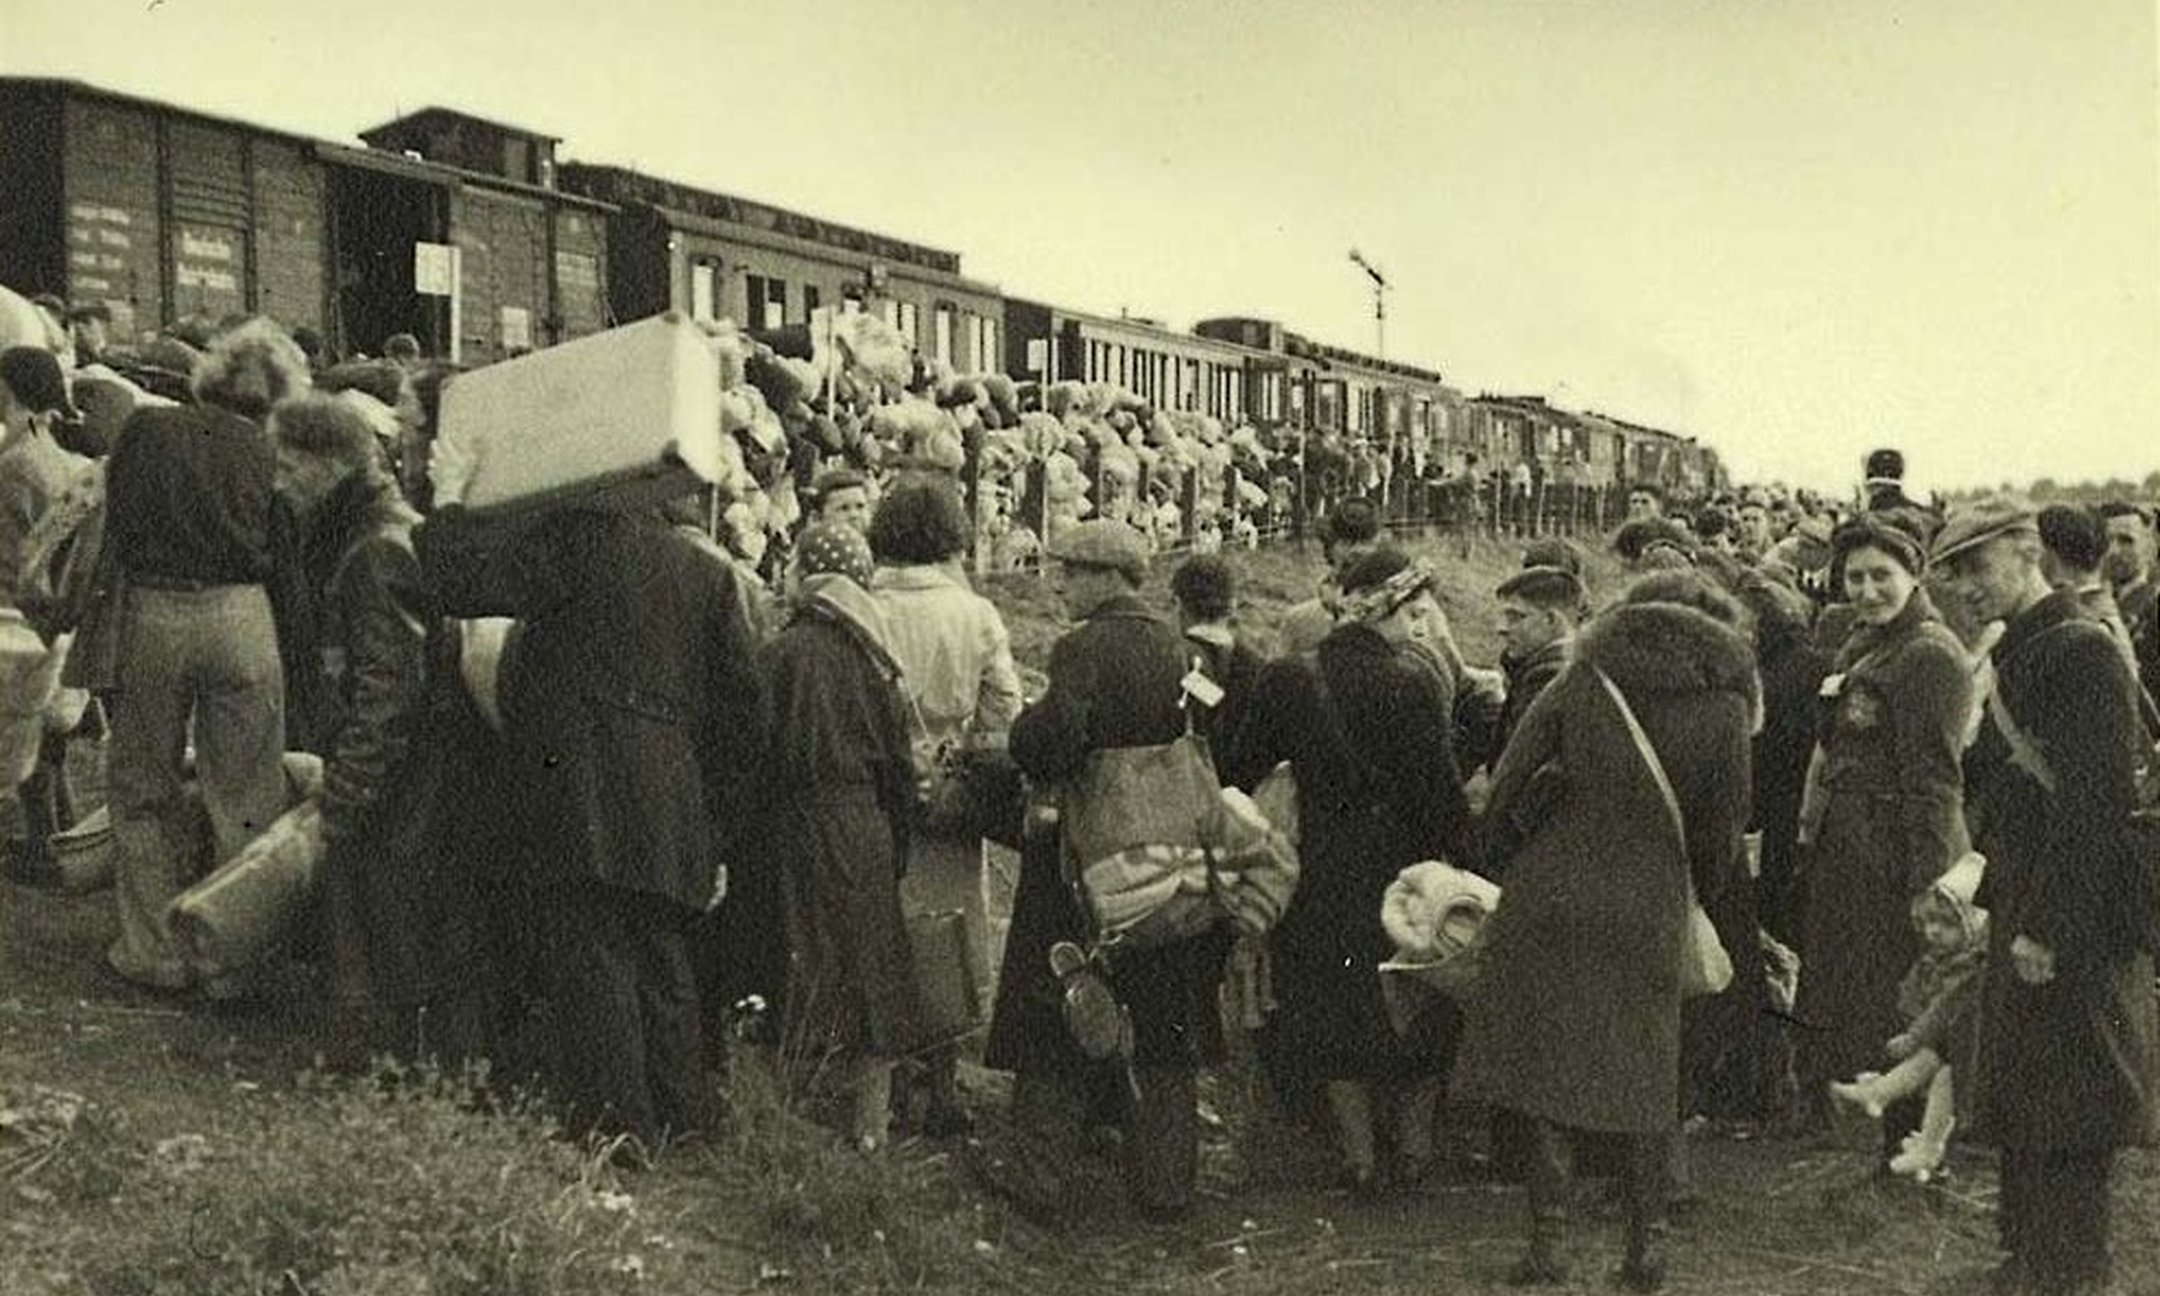 Dutch Jews board the train that is to take them to Auschwitz. Photograph from 1942 or 1943.